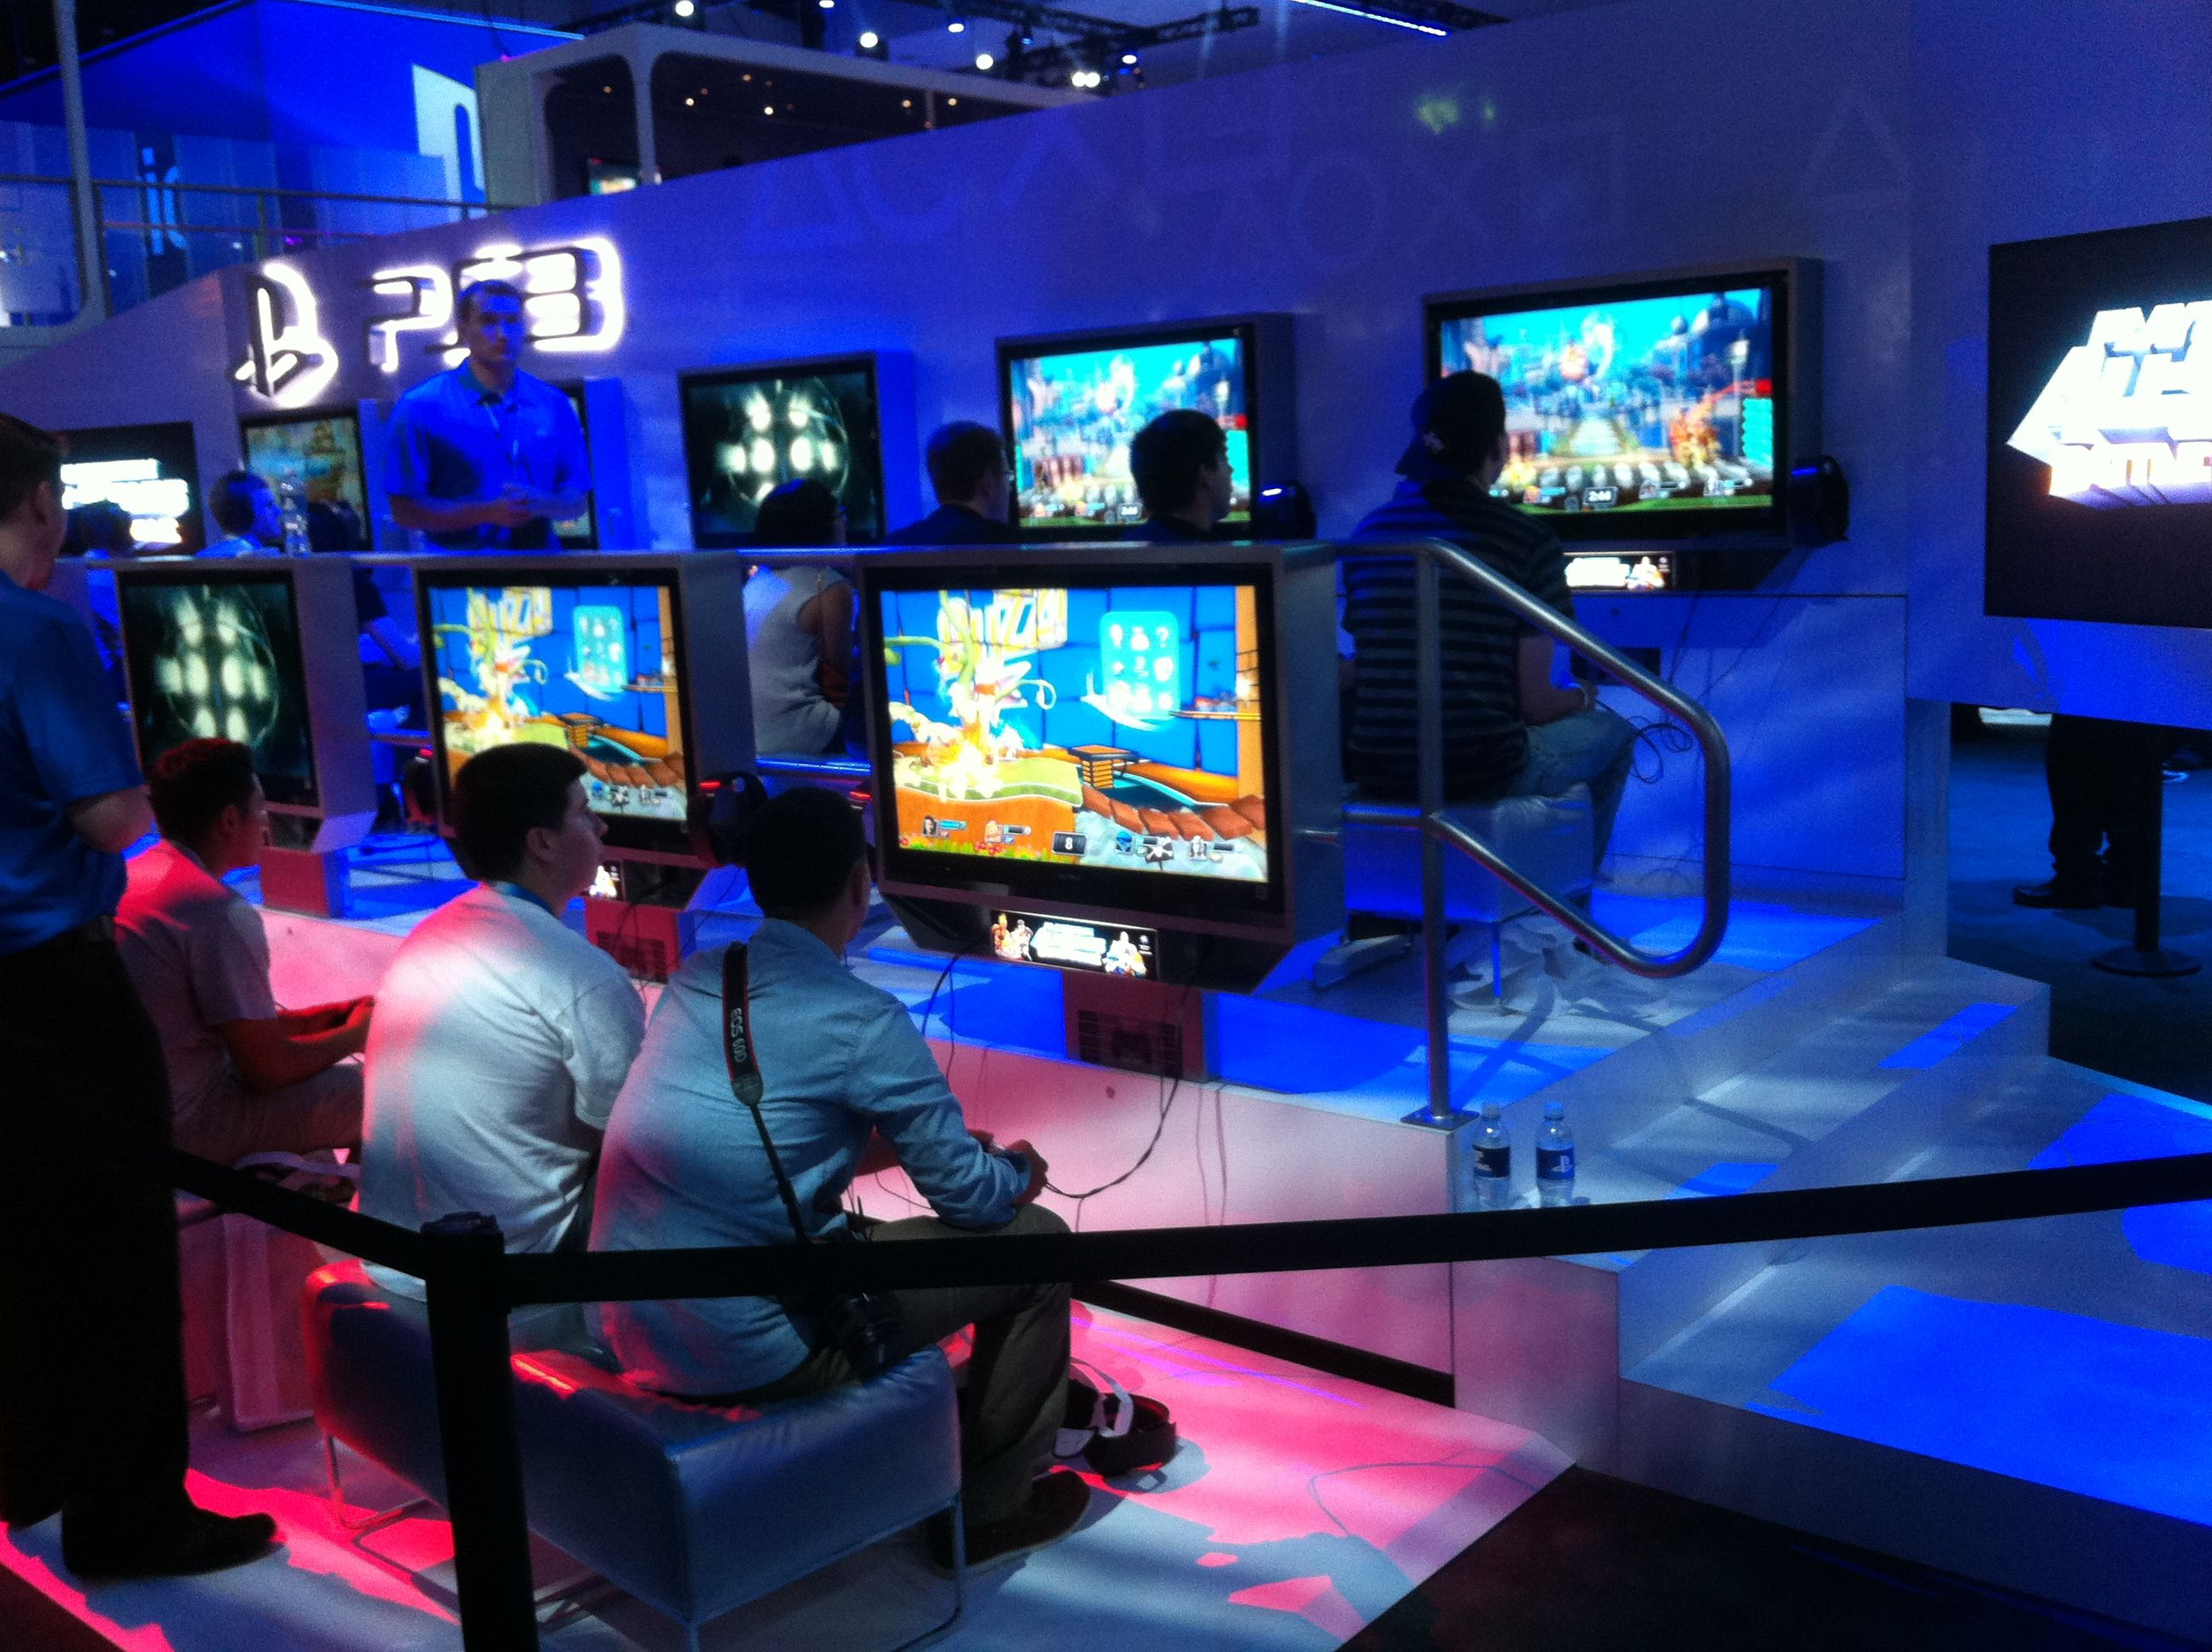 Gaming Desks Pinterest Center Games And Video Telephone Line Wiring Group Picture Image By Tag Keywordpictures What Players Look For In A Lan Smartlaunch